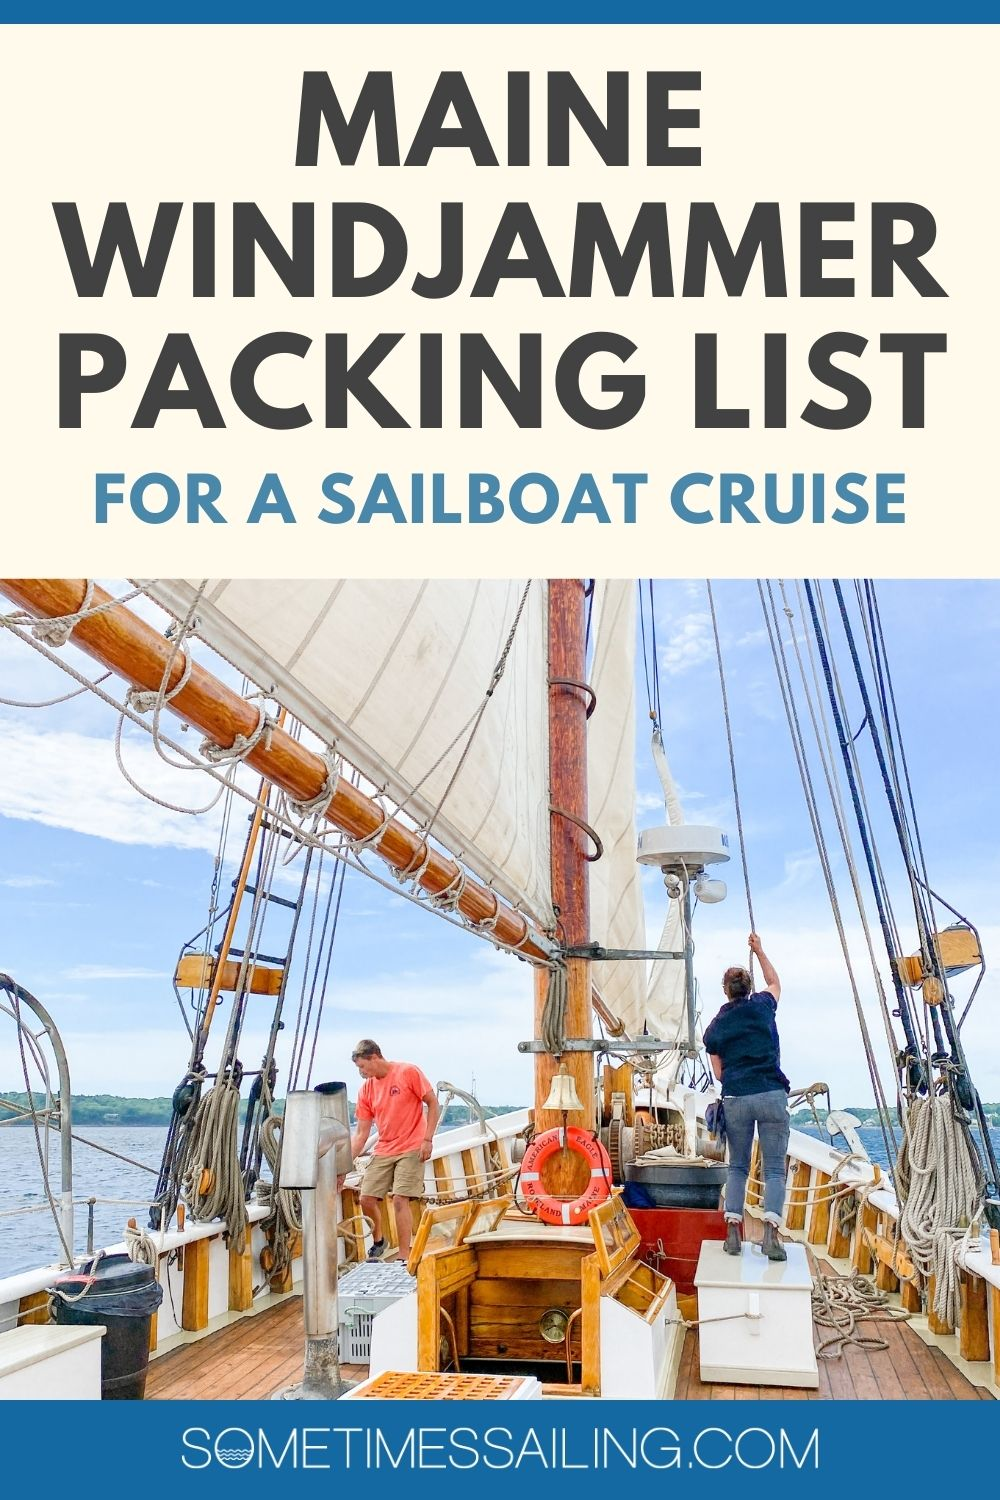 Maine Windjammer Packing List for a sailboat cruise.